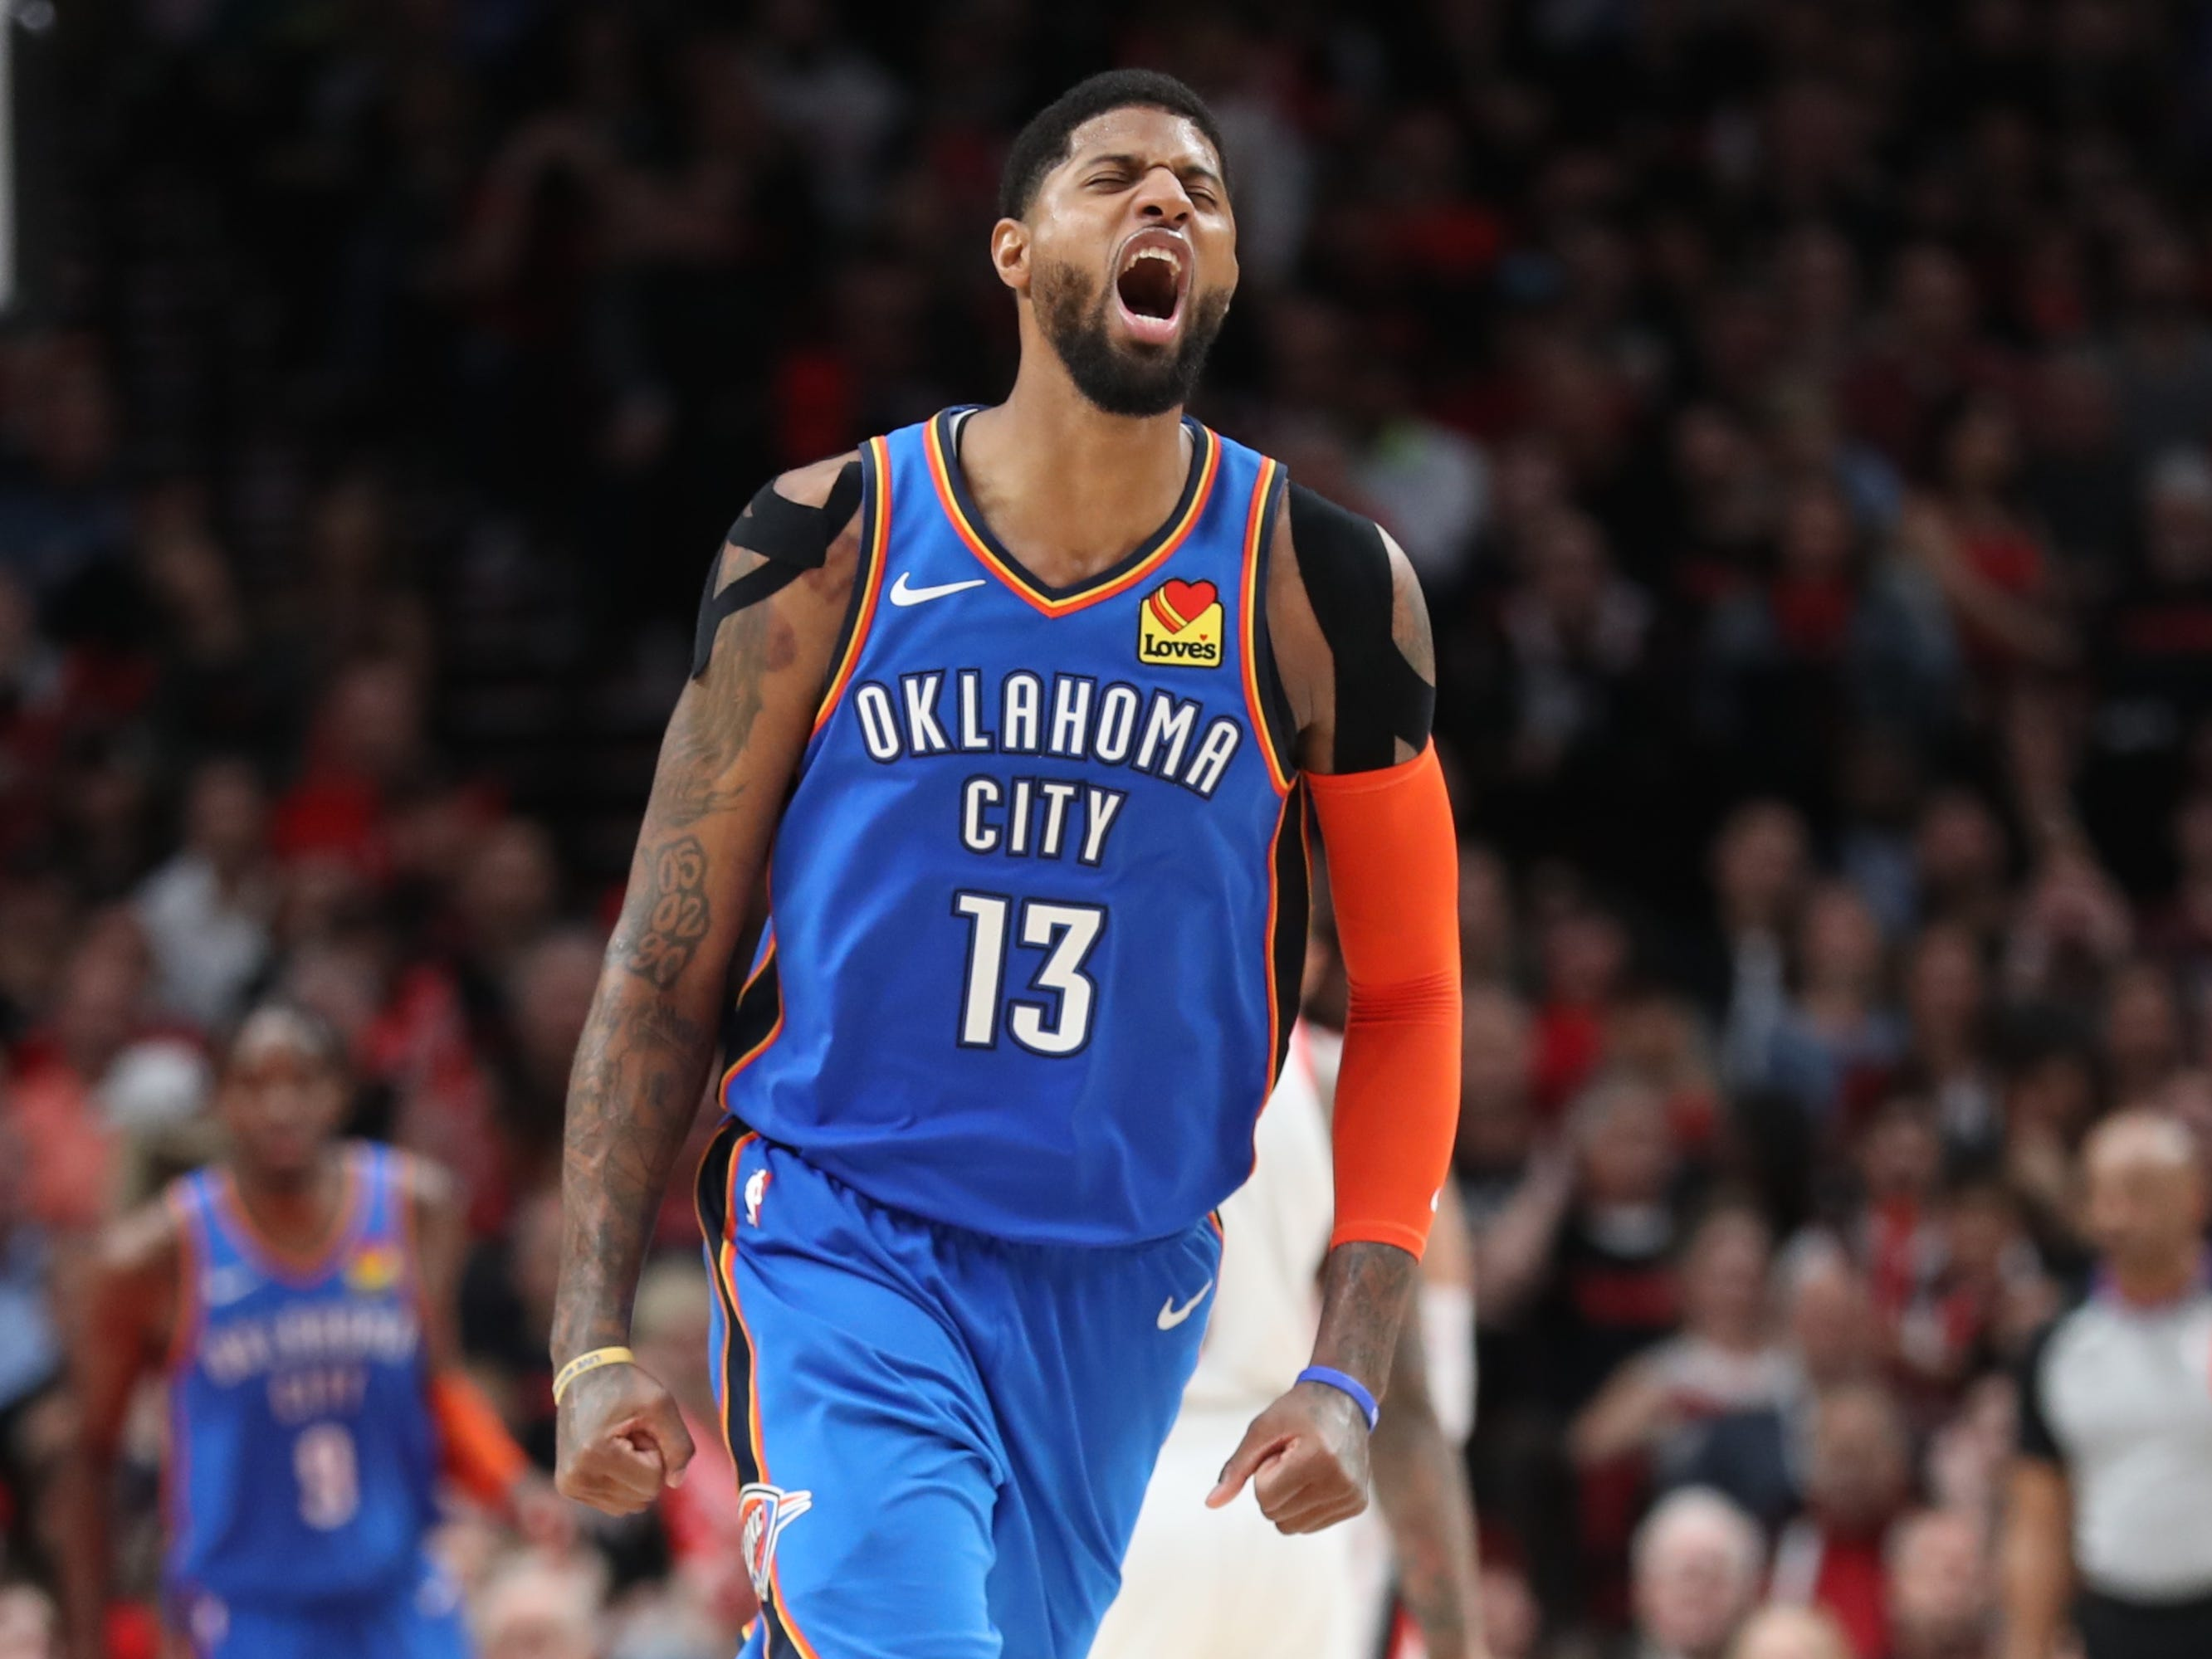 April 14: Thunder forward Paul George reacts after making a 3-point shot in the second half of Game 1 against the Trail Blazers.